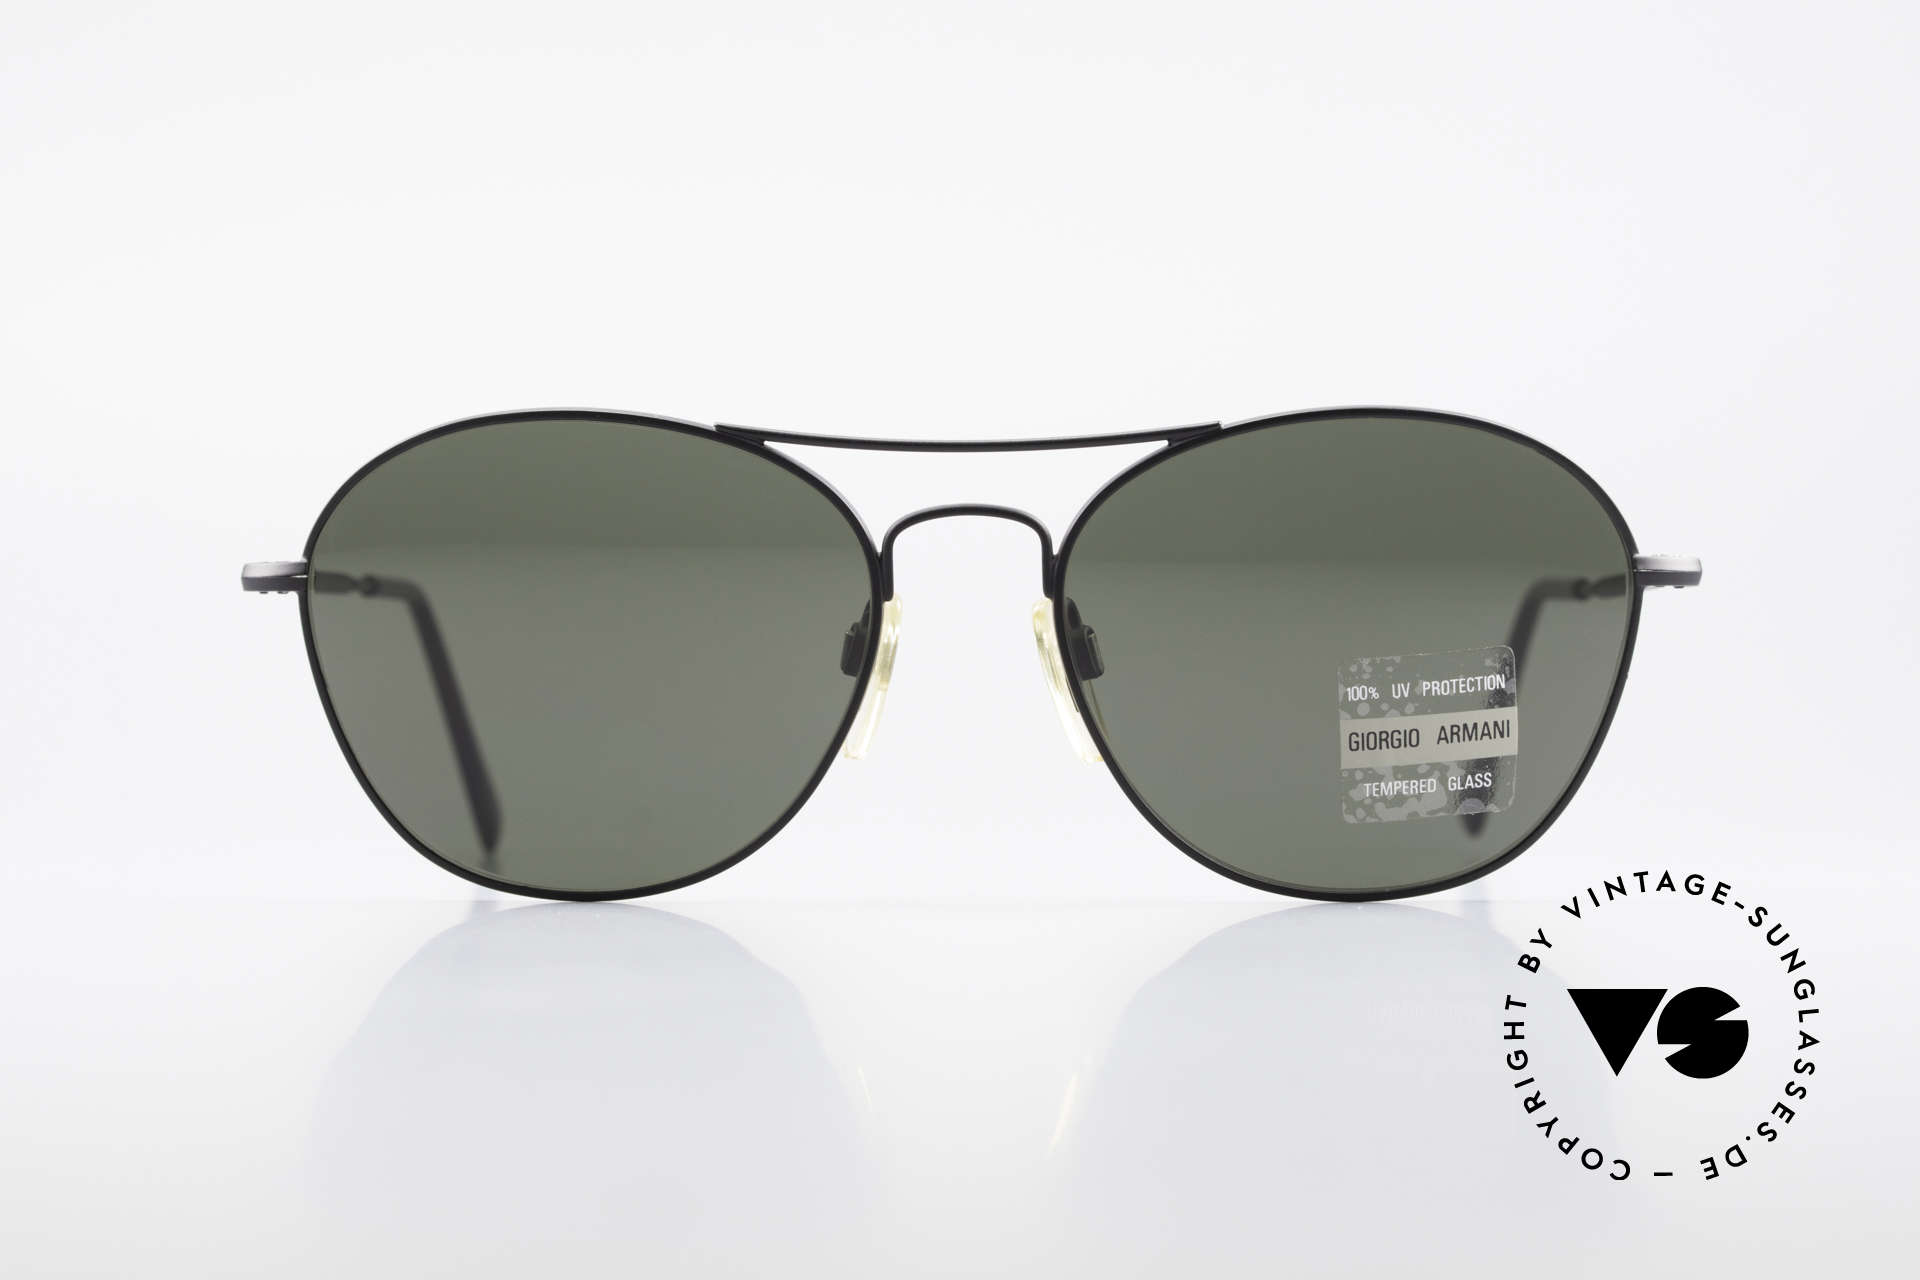 Giorgio Armani 646 Aviator Style Designer Shades, discreet black framework and dark green lenses, Made for Men